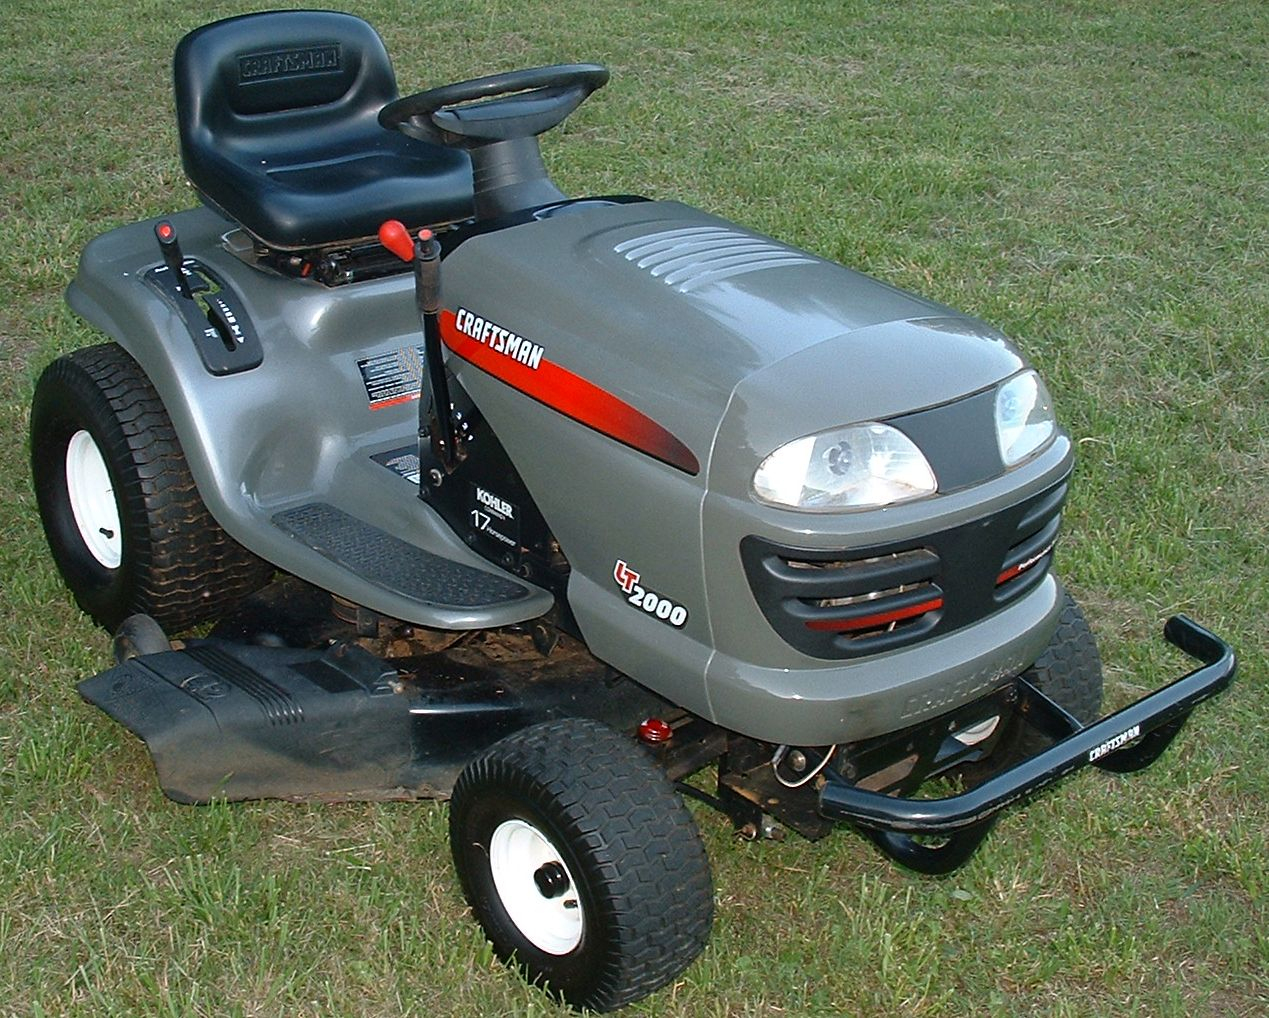 Craftsman Riding Lawn Mower Ignition Switch Wiring Diagram | Yard - Riding Lawn Mower Ignition Switch Wiring Diagram